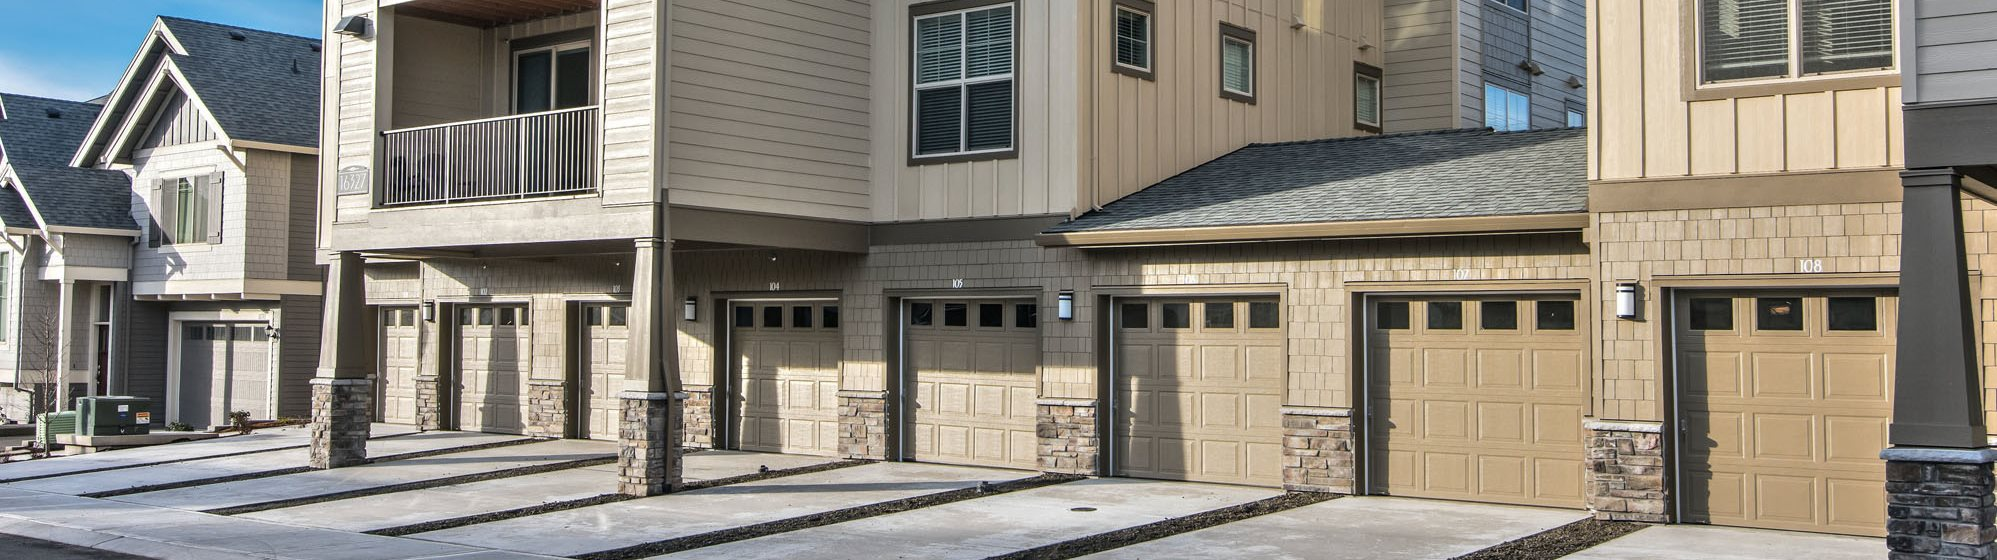 Sprinville Oaks Apartments with Garages